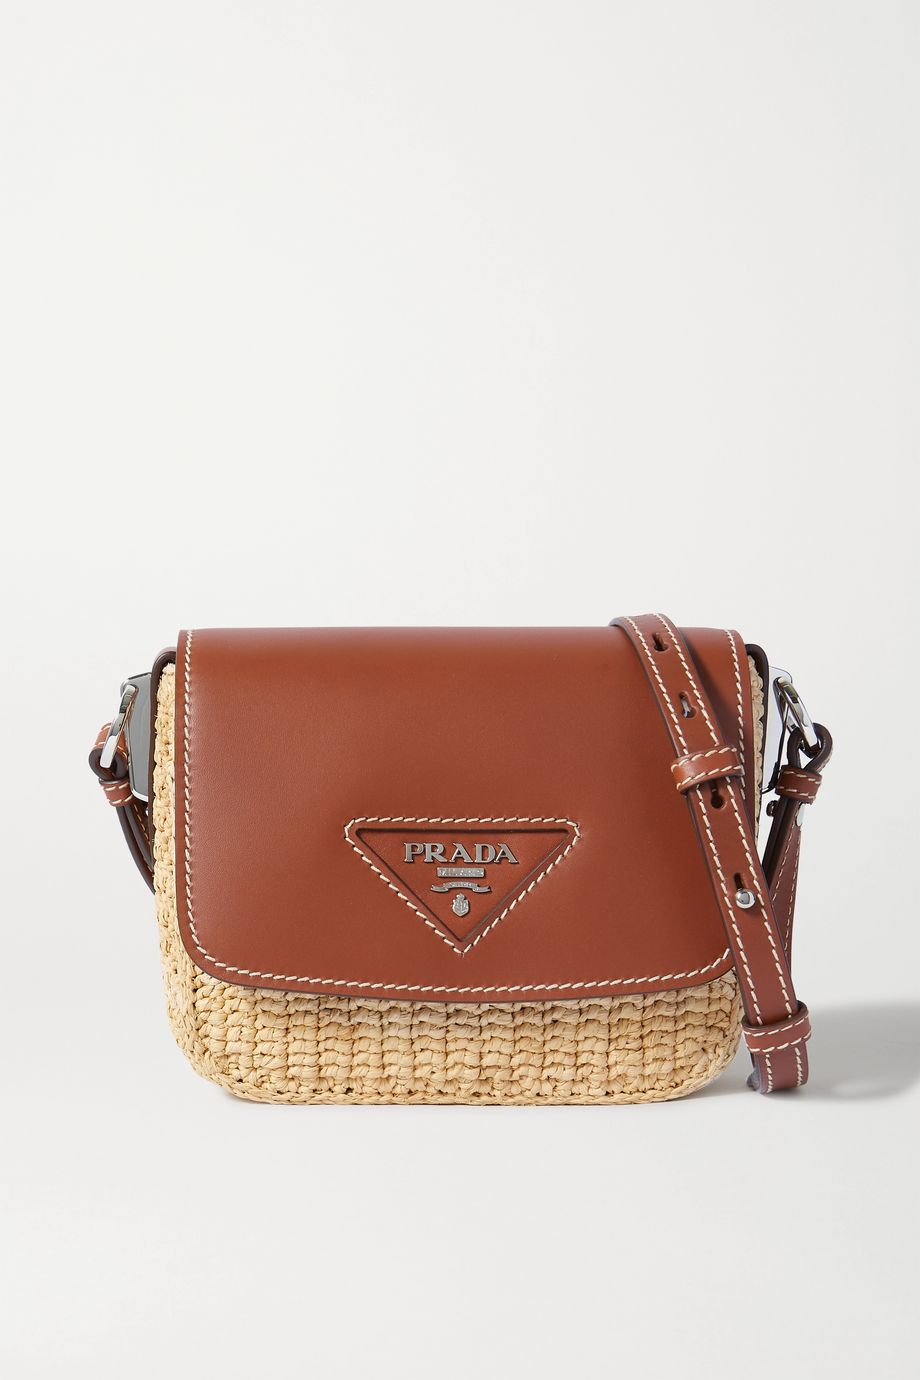 Prada Flap raffia and leather shoulder bag